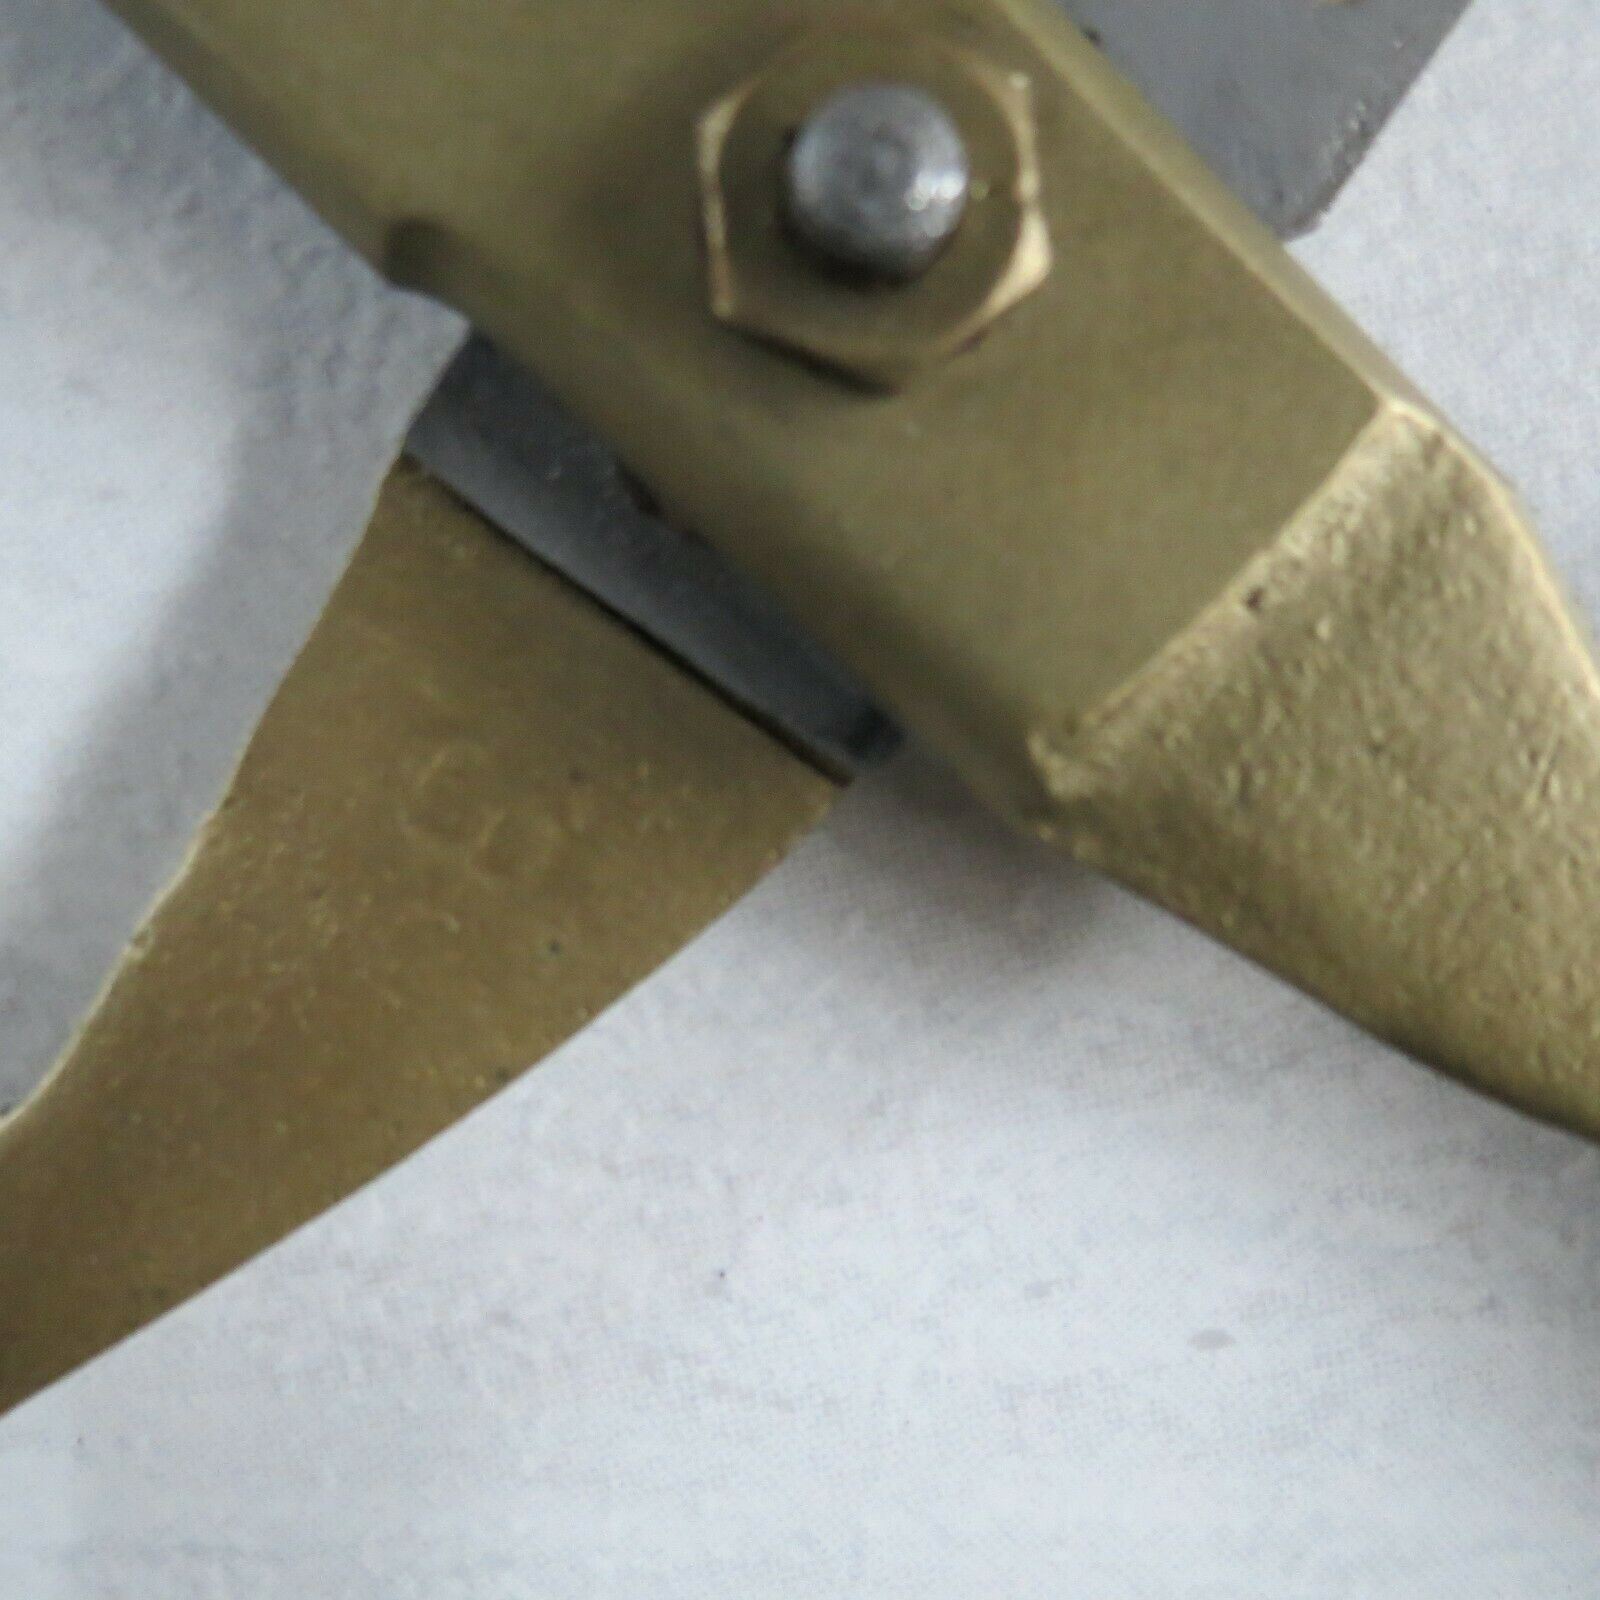 Antique brass handled steel scissors Midwest brand number 8 12.75 inch